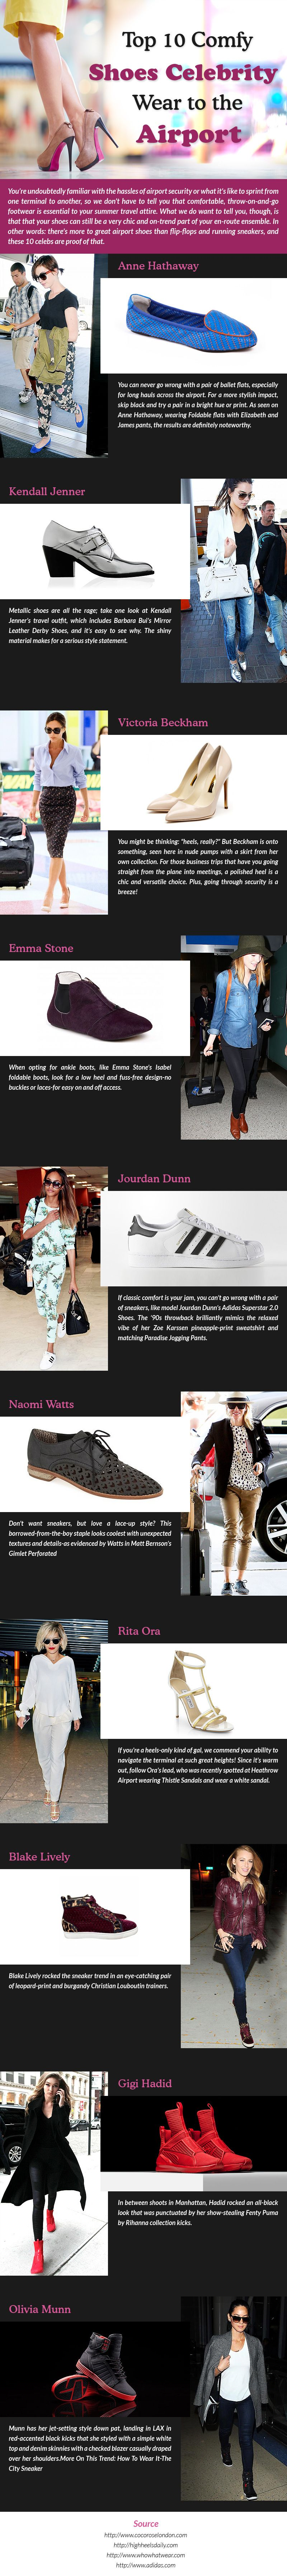 Shoes Celebrities Wear To the Airport [Infographic]